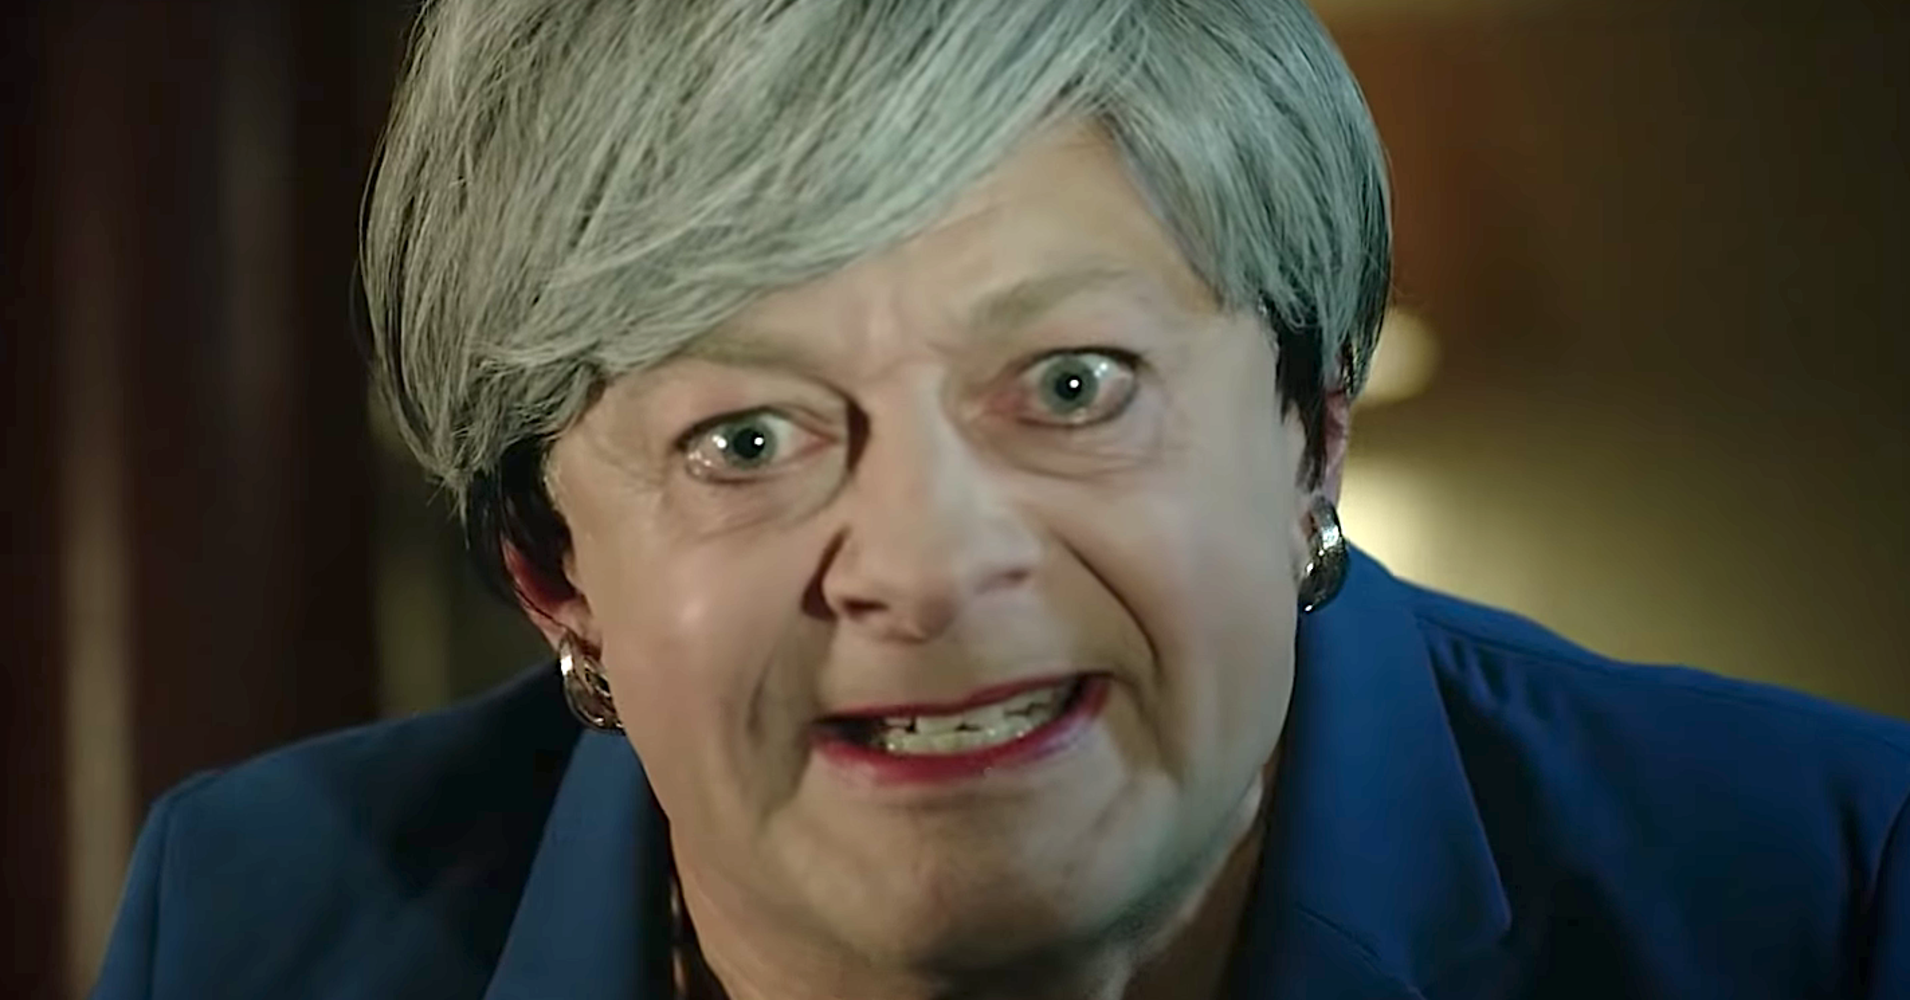 British Pm Theresa May Goes Full Gollum In Precious Andy Serkis